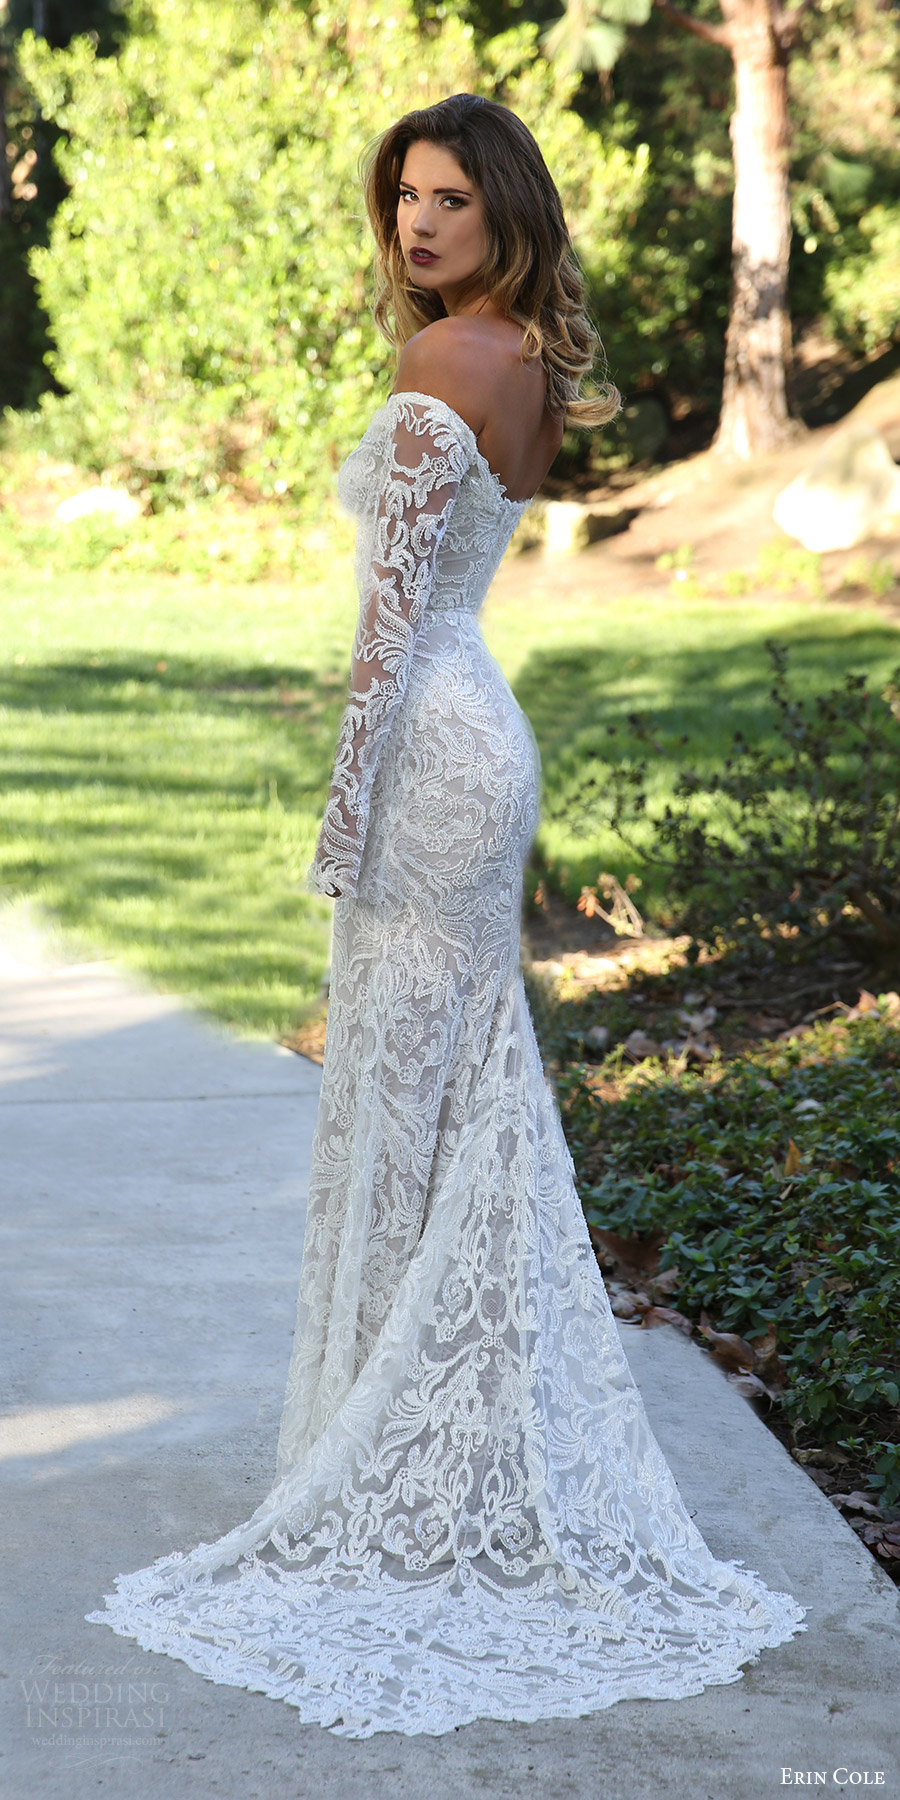 Erin Cole Fall 2017 Bridal Off Shoulder Long Sleeves Beaded Lace Sheath Wedding Dress Antoinette